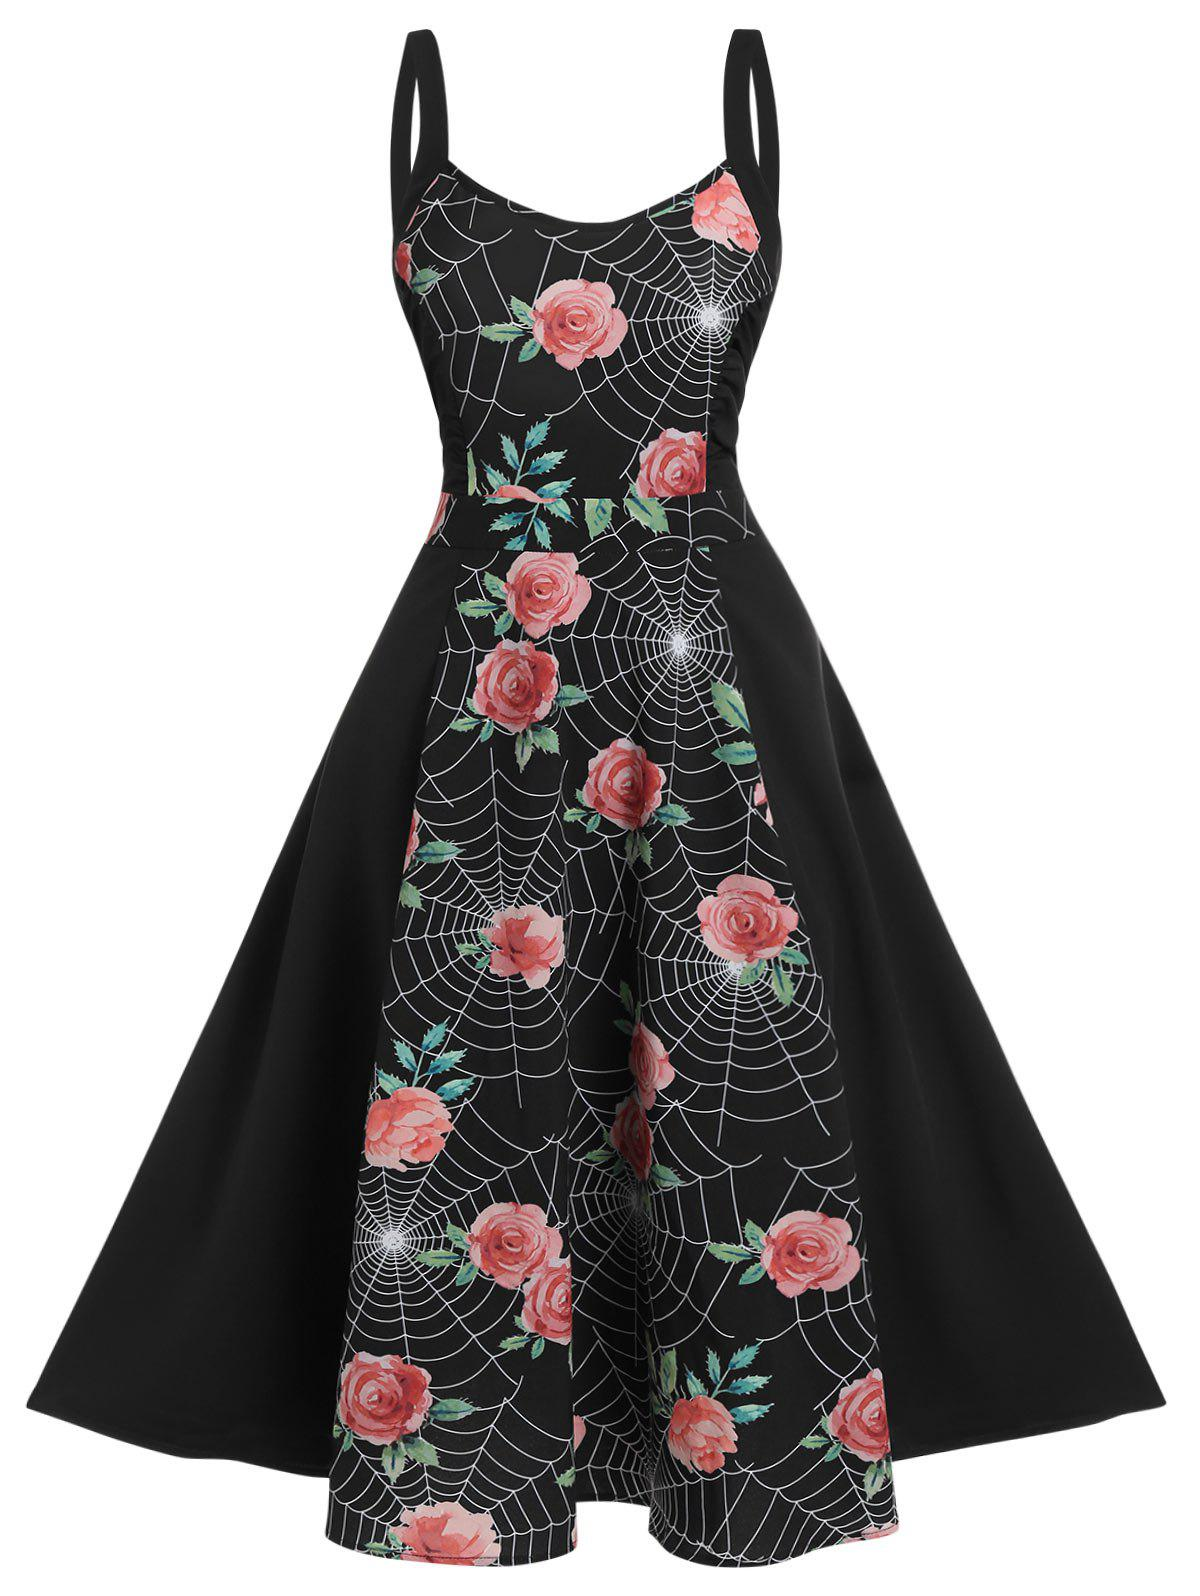 Floral Spider Web Print High Waist Cami Dress - BLACK M